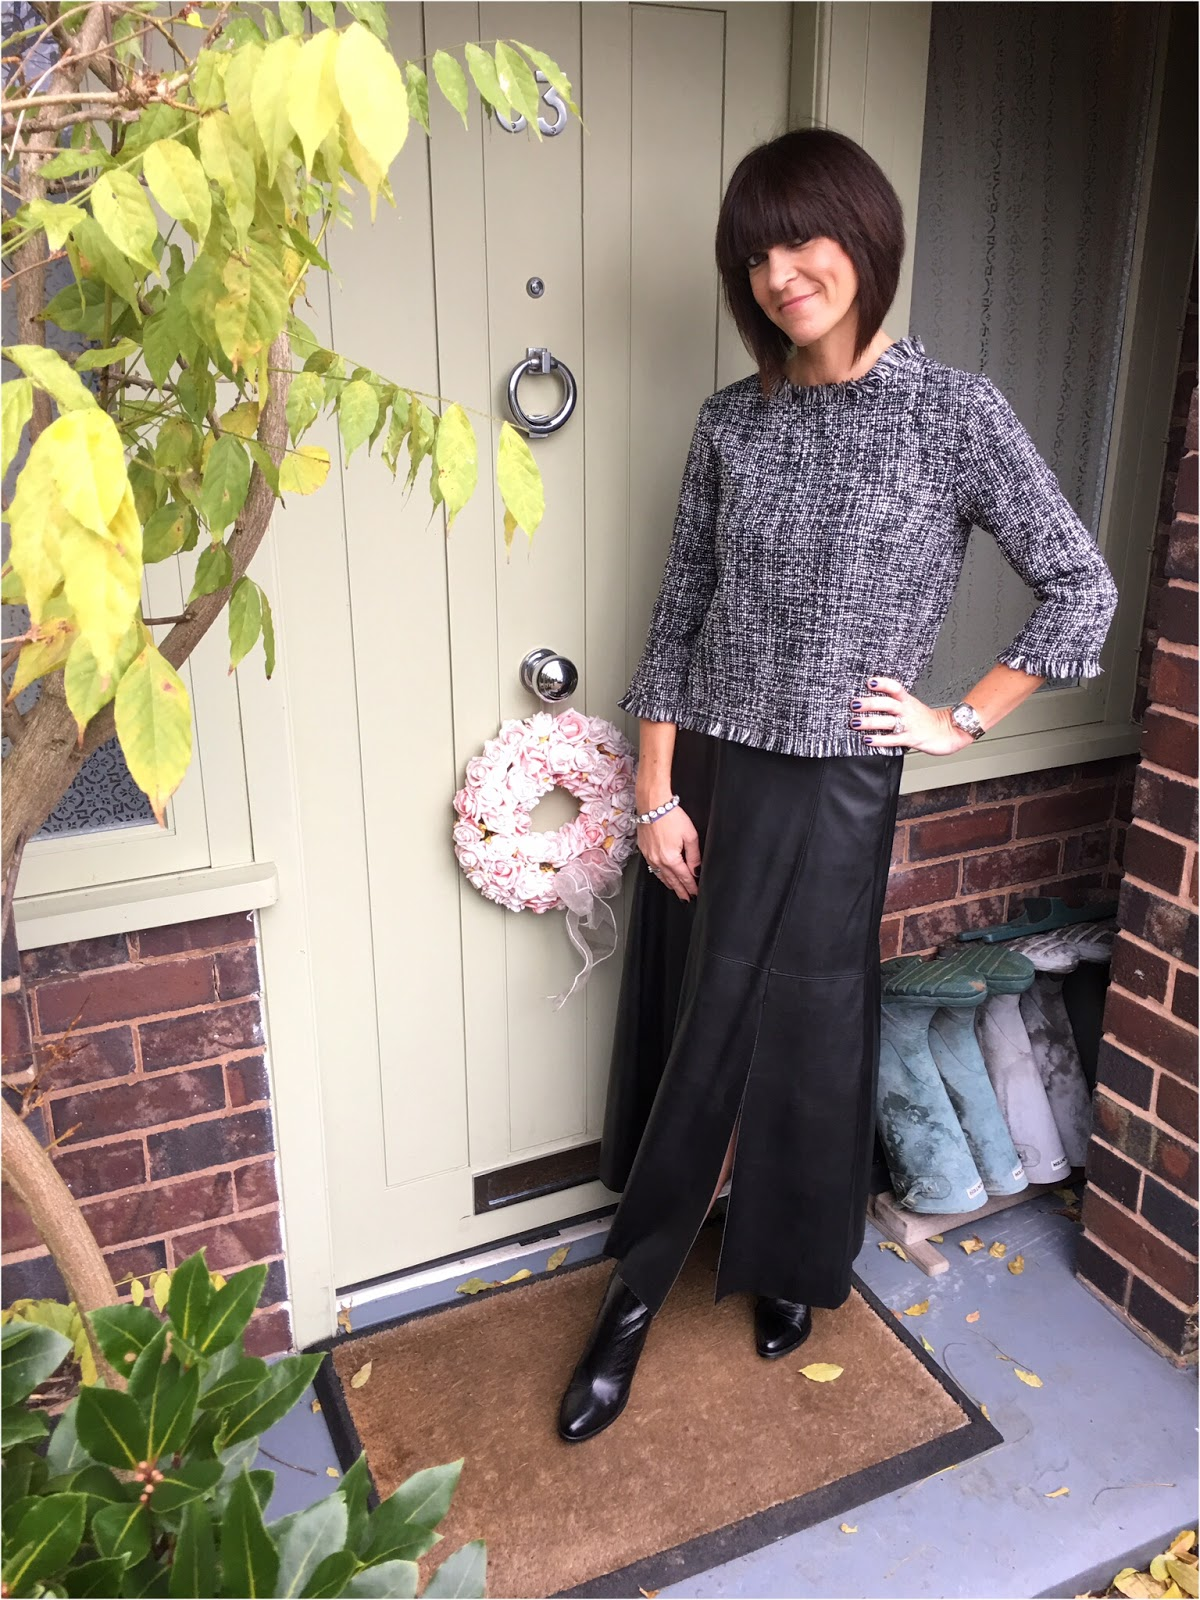 WIWT - Styling A Faux Leather Maxi Skirt | My Midlife Fashion